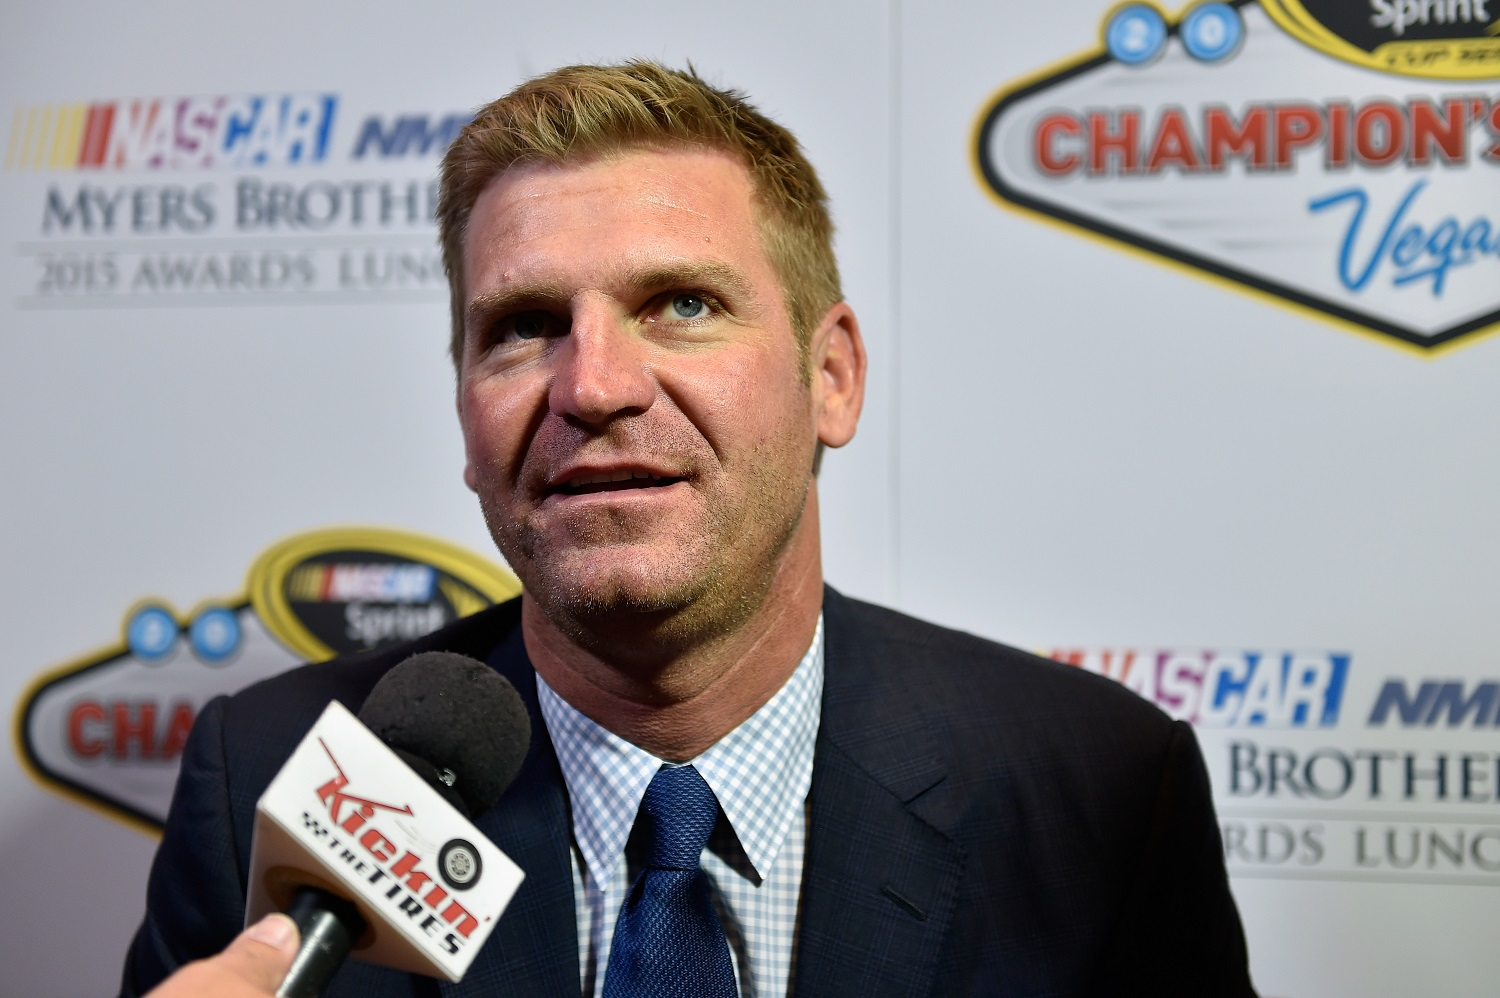 Clint Bowyer's first season in the Fox Sports broadcast booth for the NASCAR Cup Series was a success. | David Becker/NASCAR via Getty Images